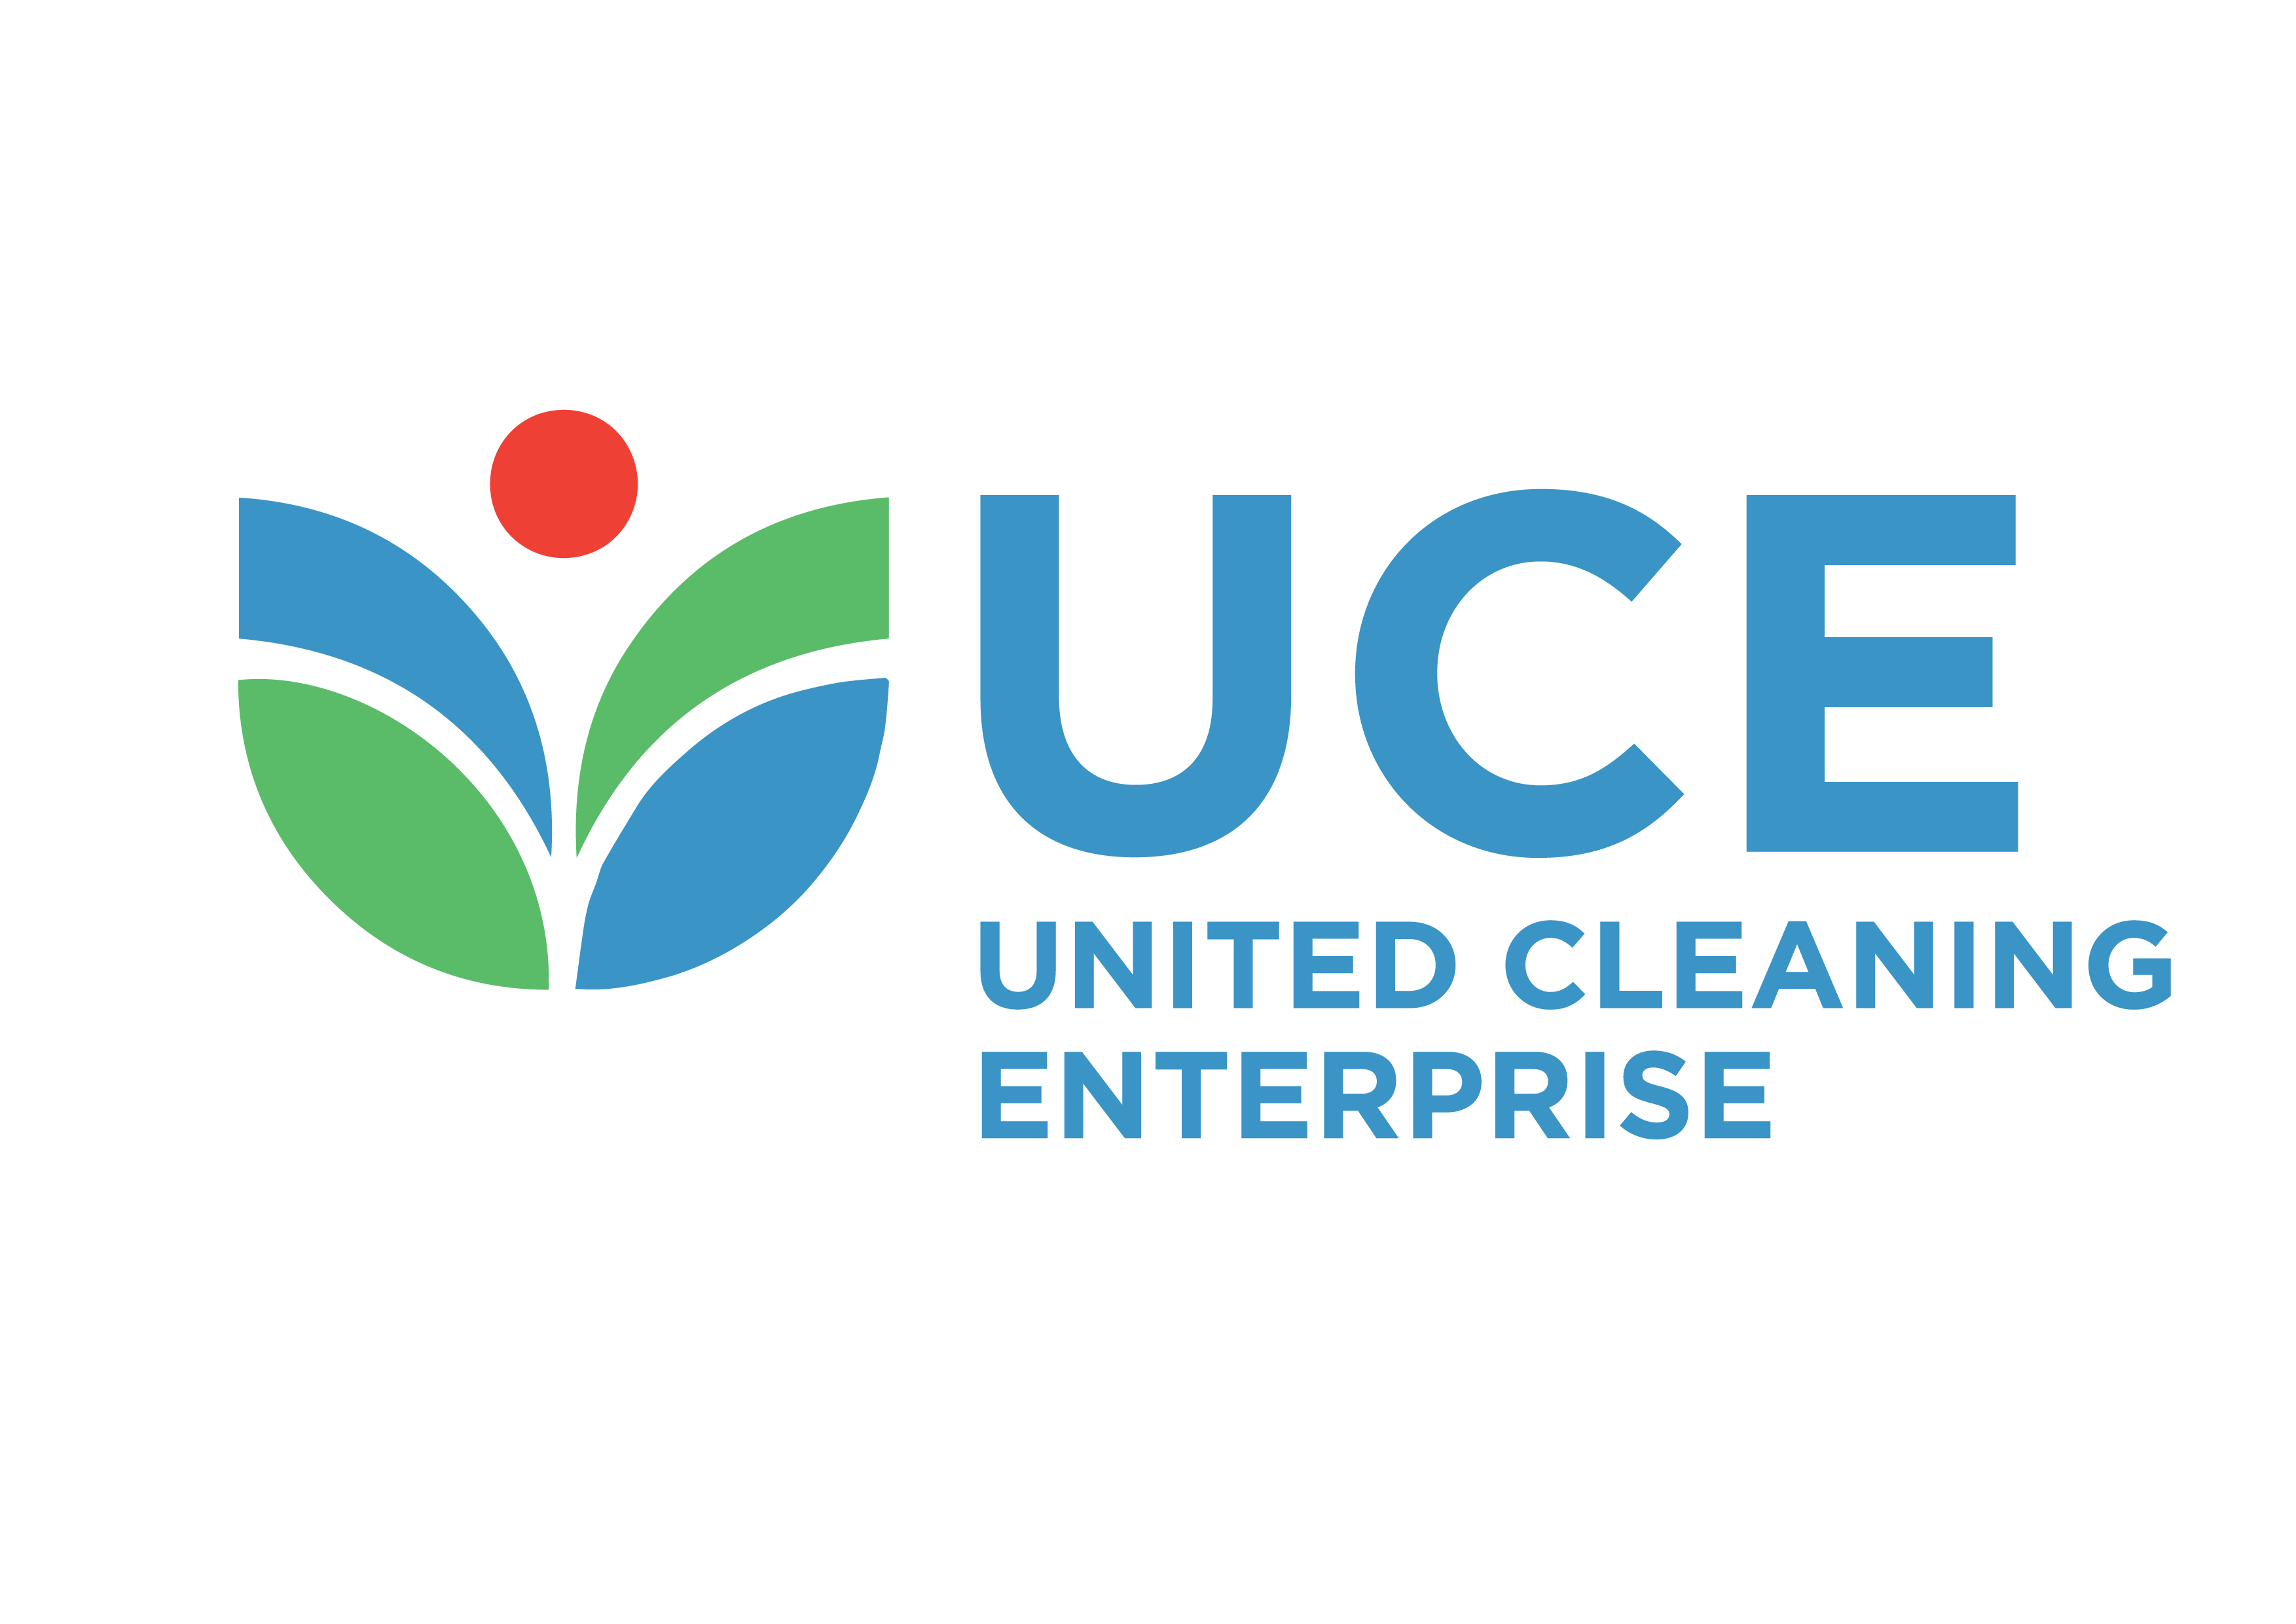 United Cleaning Enterprise